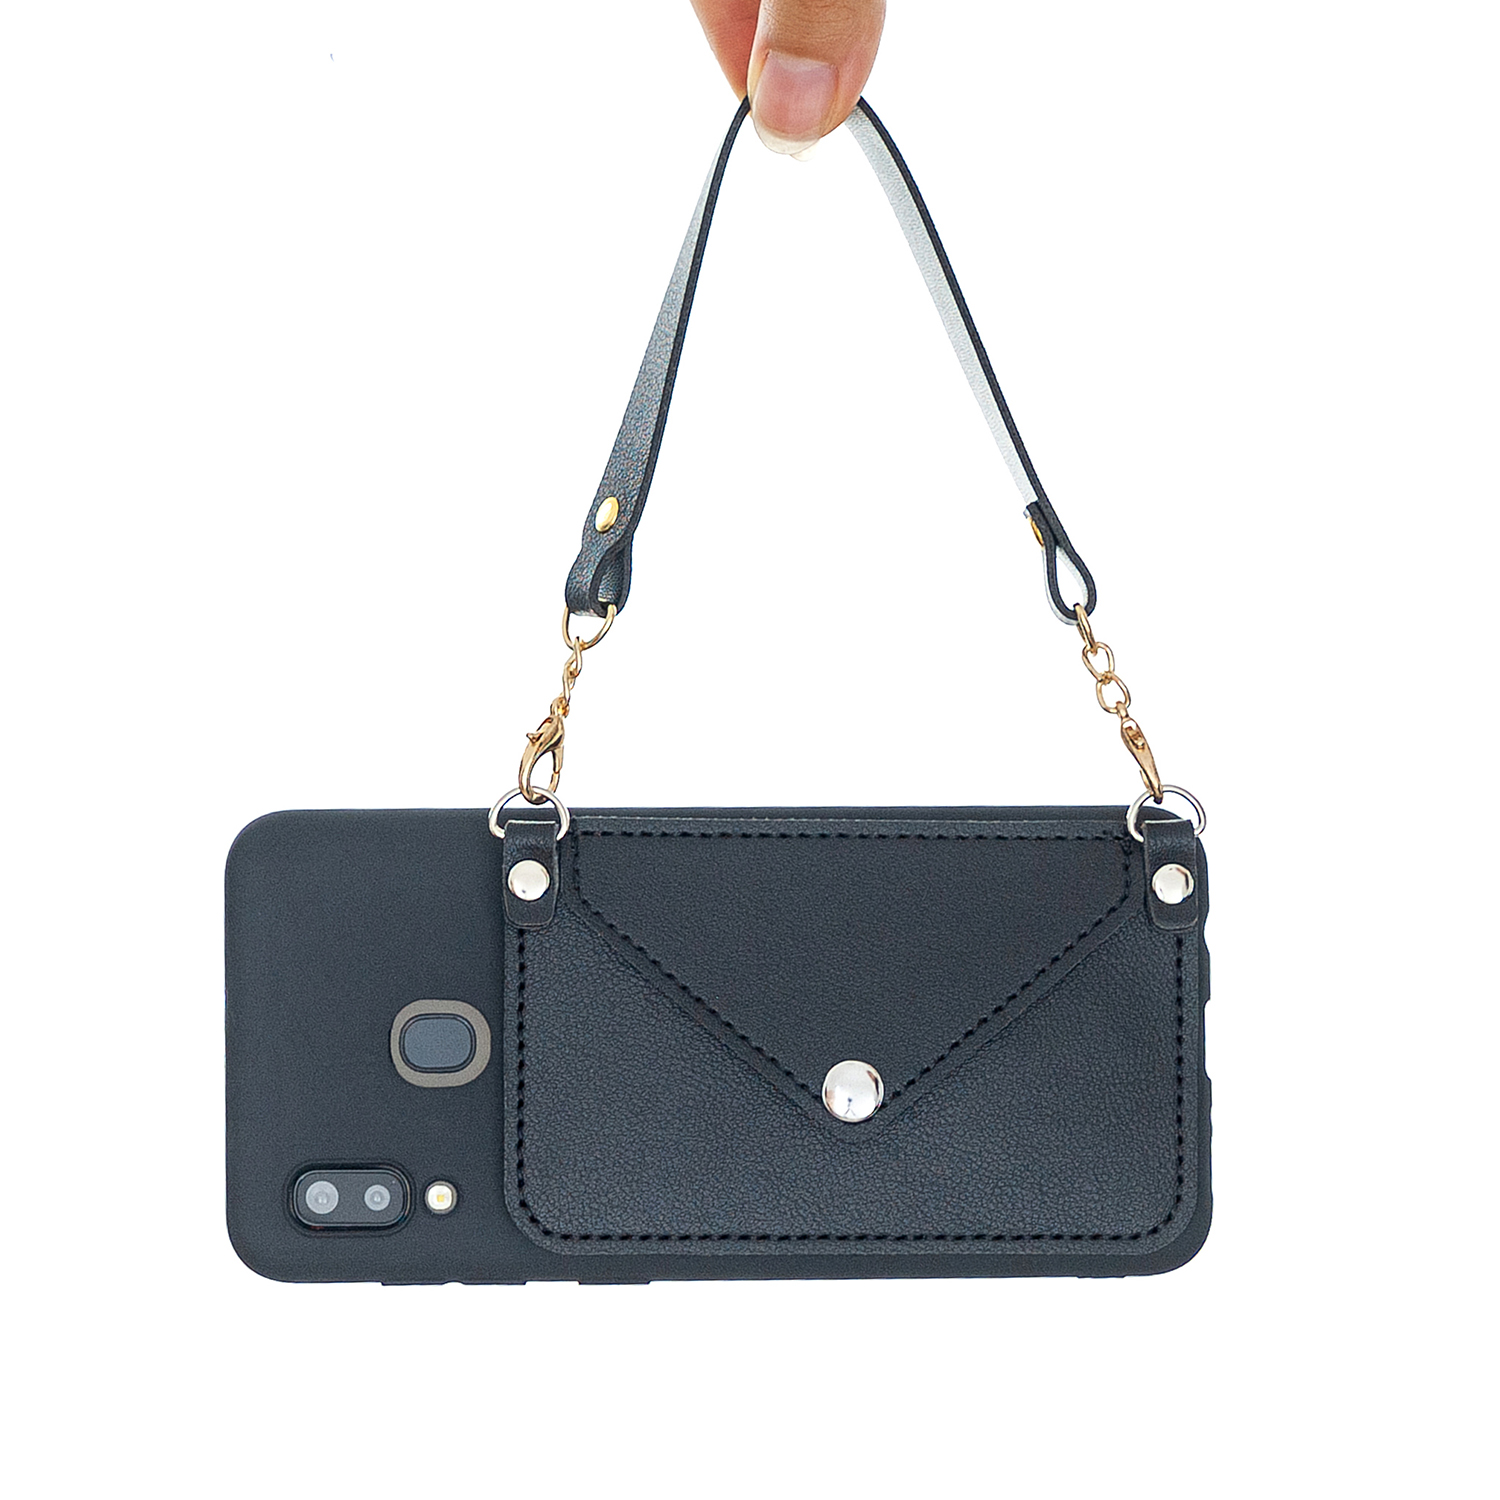 For HUAWEI Y5 2018/2019/Y6 2019/Y7 2019/PSMART Z/Y9 2019 Mobile Phone Cover with Pu Card Holder + Hand Rope + Straddle Rope black